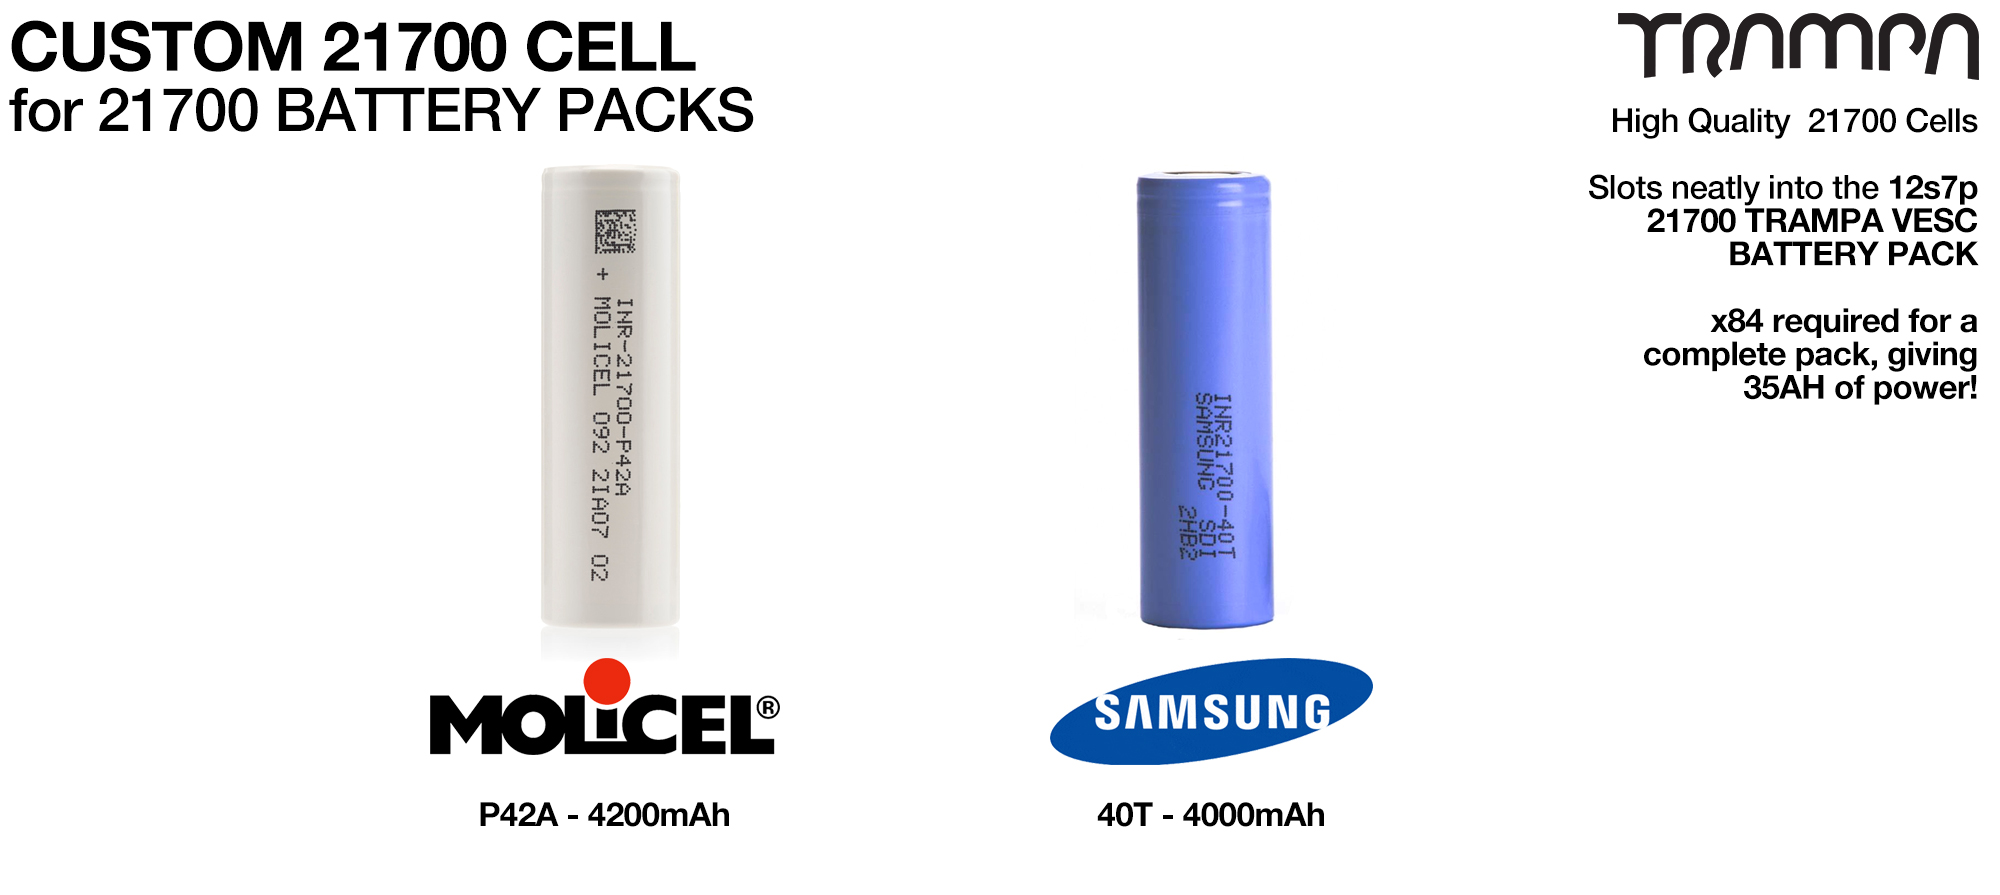 21700 Cells Lion NCA Batteries 5000mAh